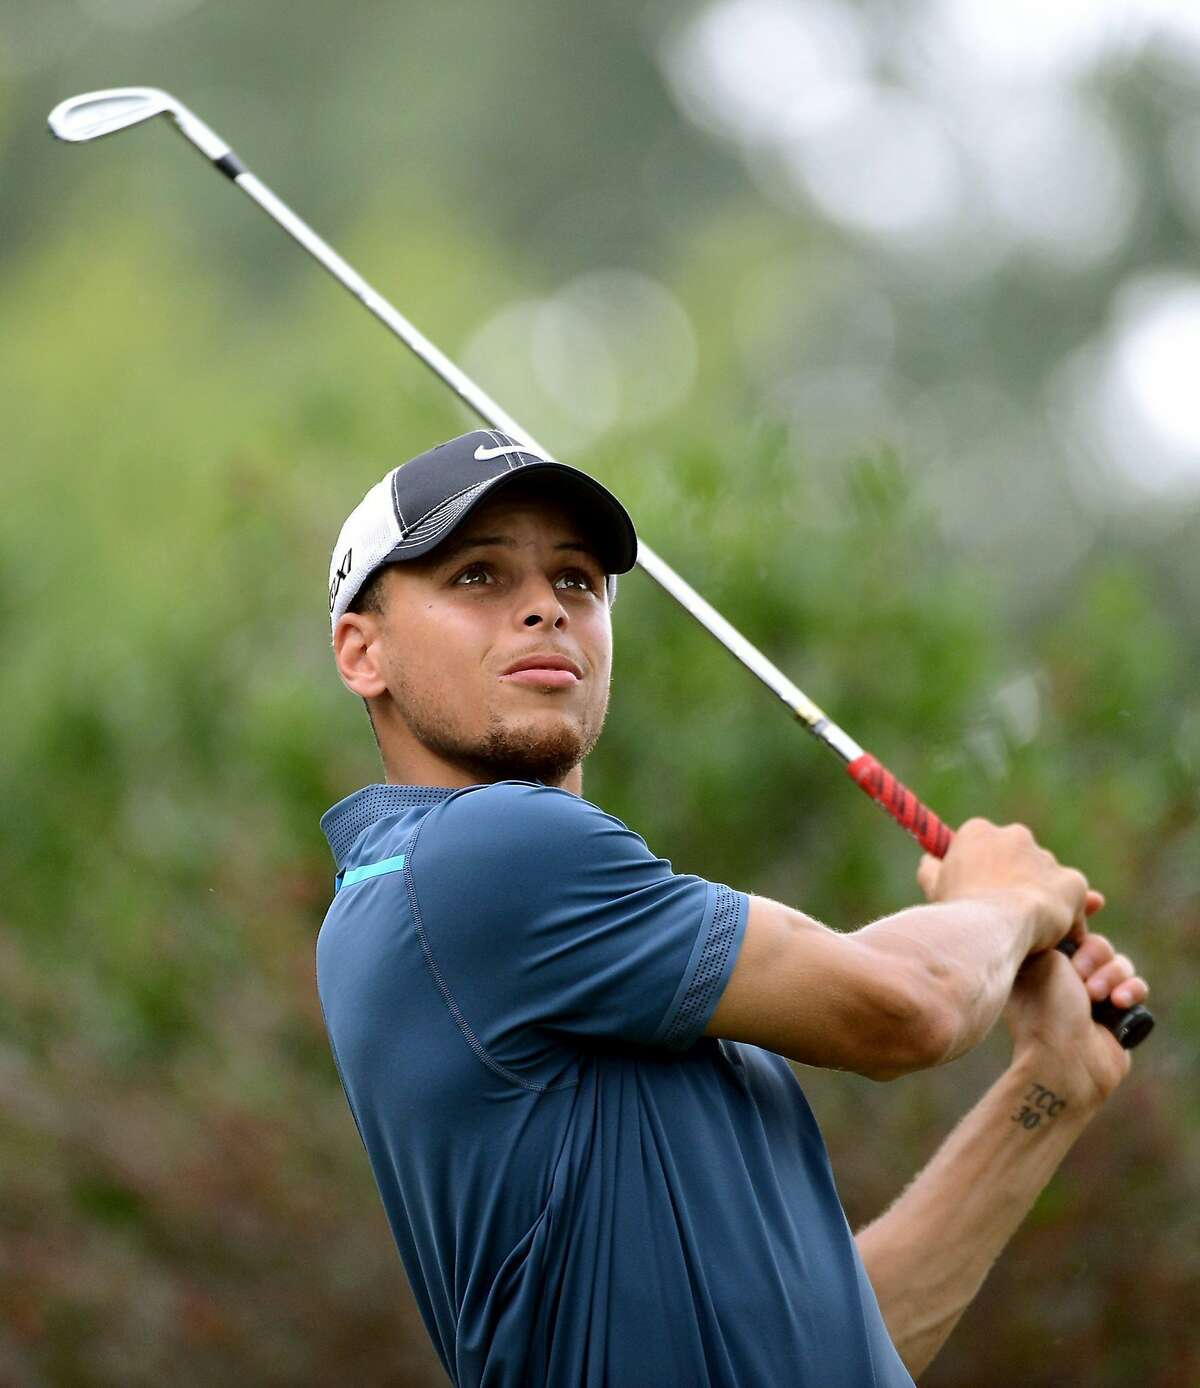 NBA guard Stephen Curry watches his drive from the ninth tee box during Fred Whitfield's 11th annual HoopTee Celebrity Golf Classic at The Golf Club at Ballantyne in Charlotte, North Carolina, Thursday, July 11, 2013. The HoopTee Celebrity Golf Classic is the primary fundraiser for HoopTee Charities, Inc. (Jeff Siner/Charlotte Observer/MCT)